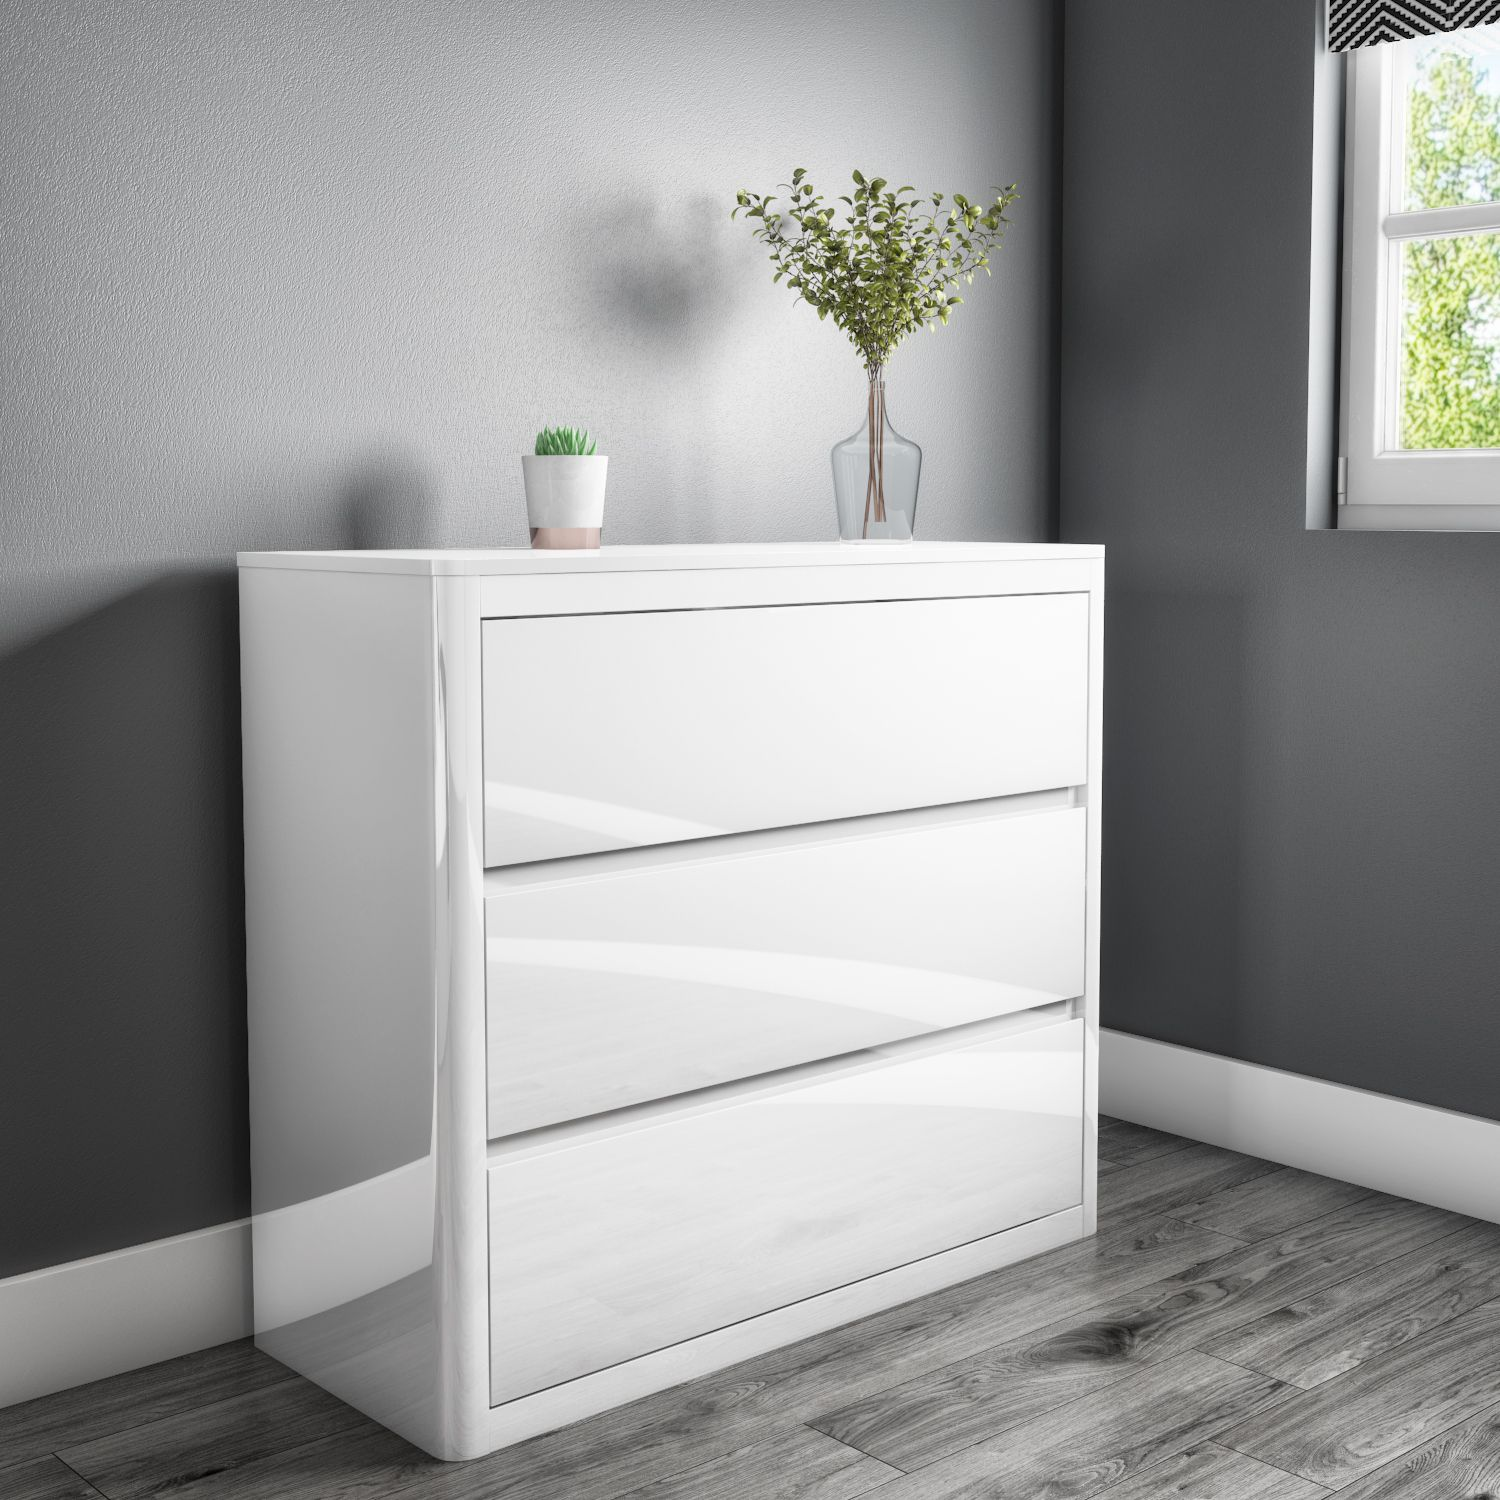 Lexi White High Gloss 3 Chest of Drawers LEX003 Chest of